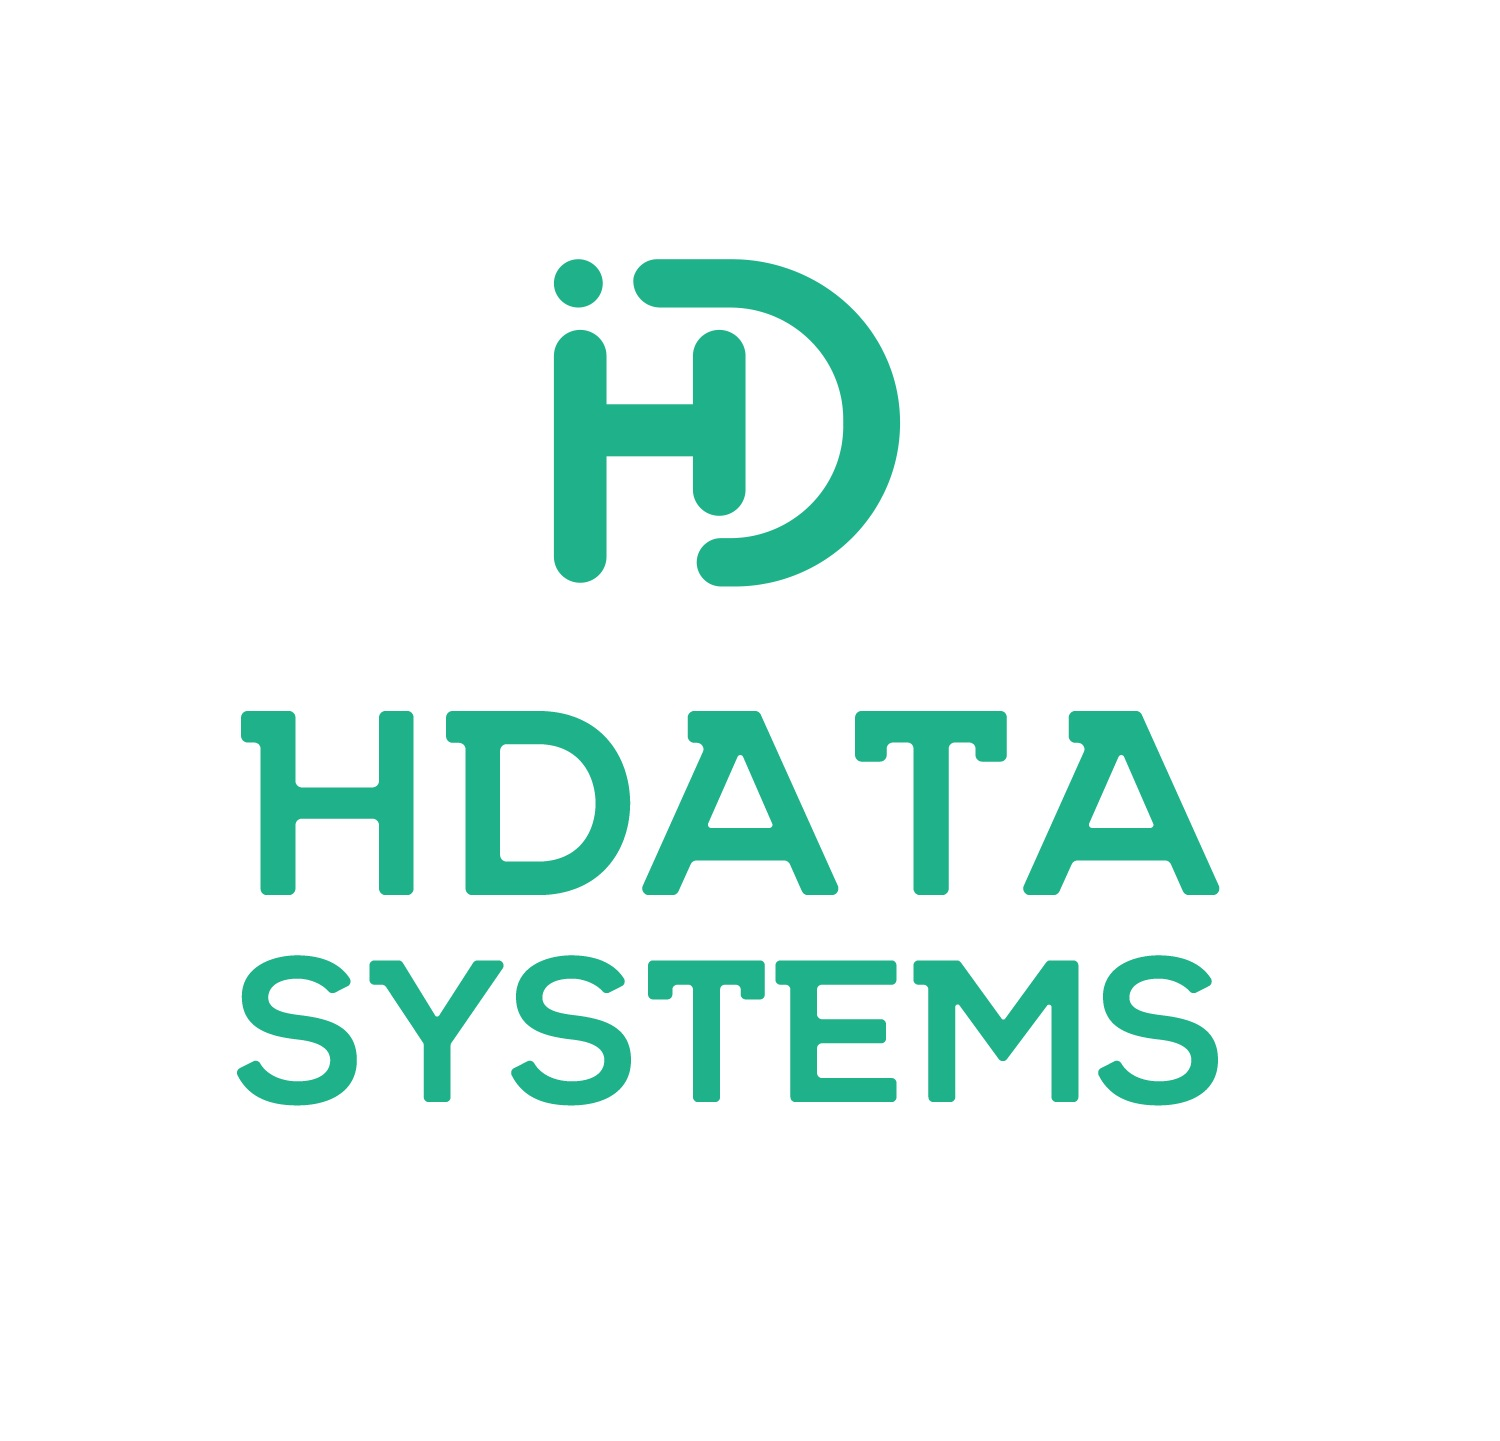 hdata-systems